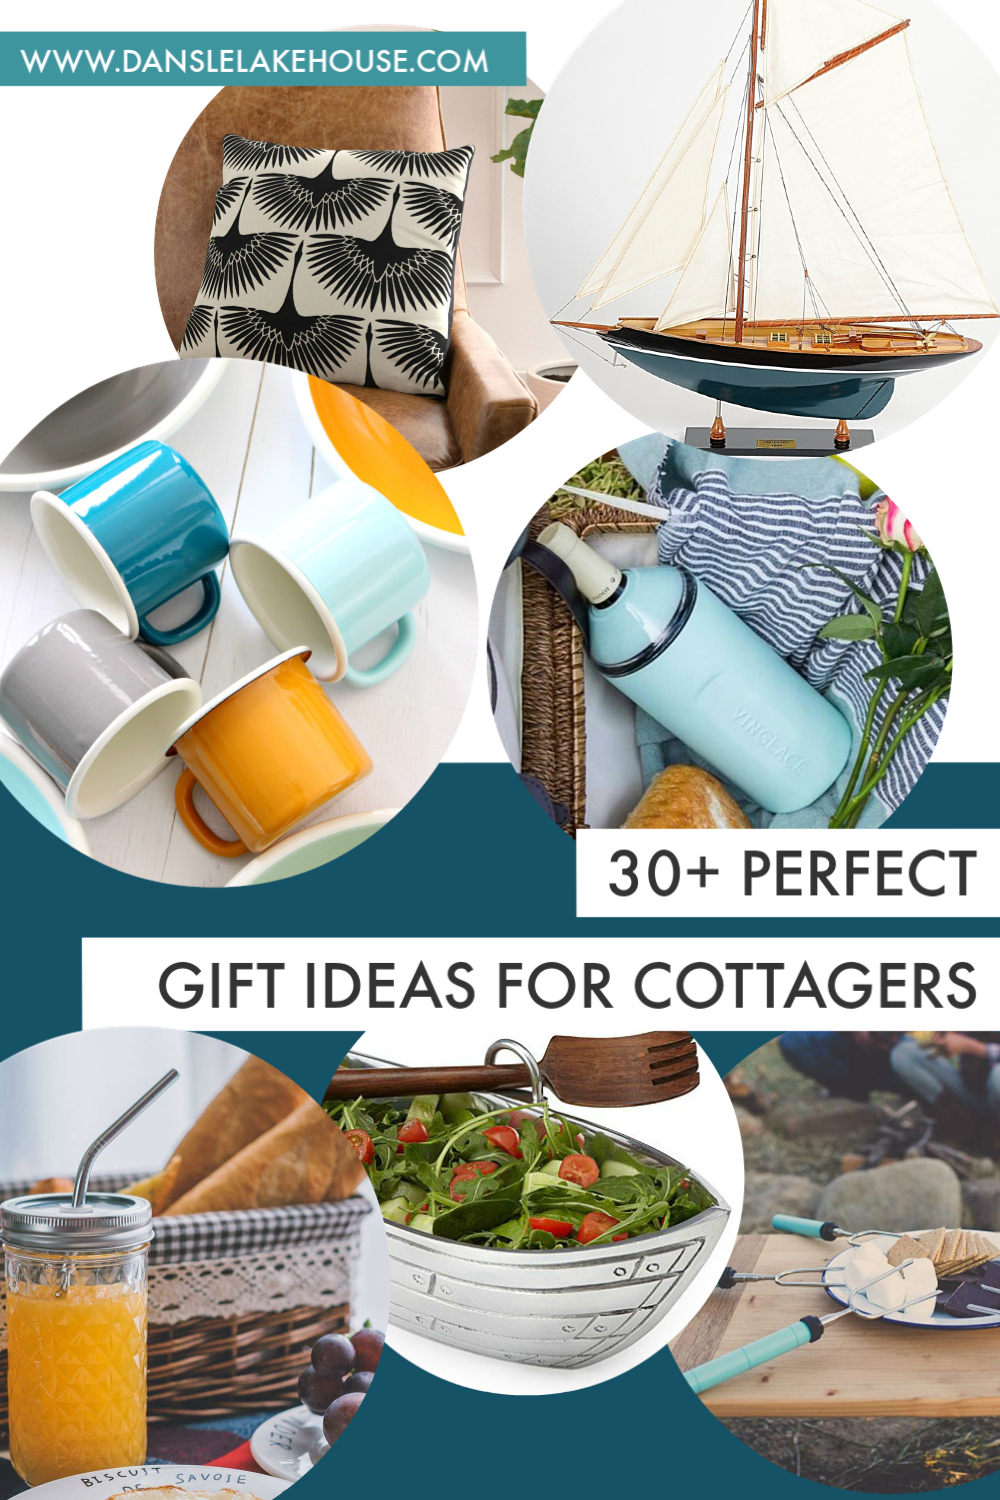 Holiday Gift Guide: Gifts for the Cottage 2018